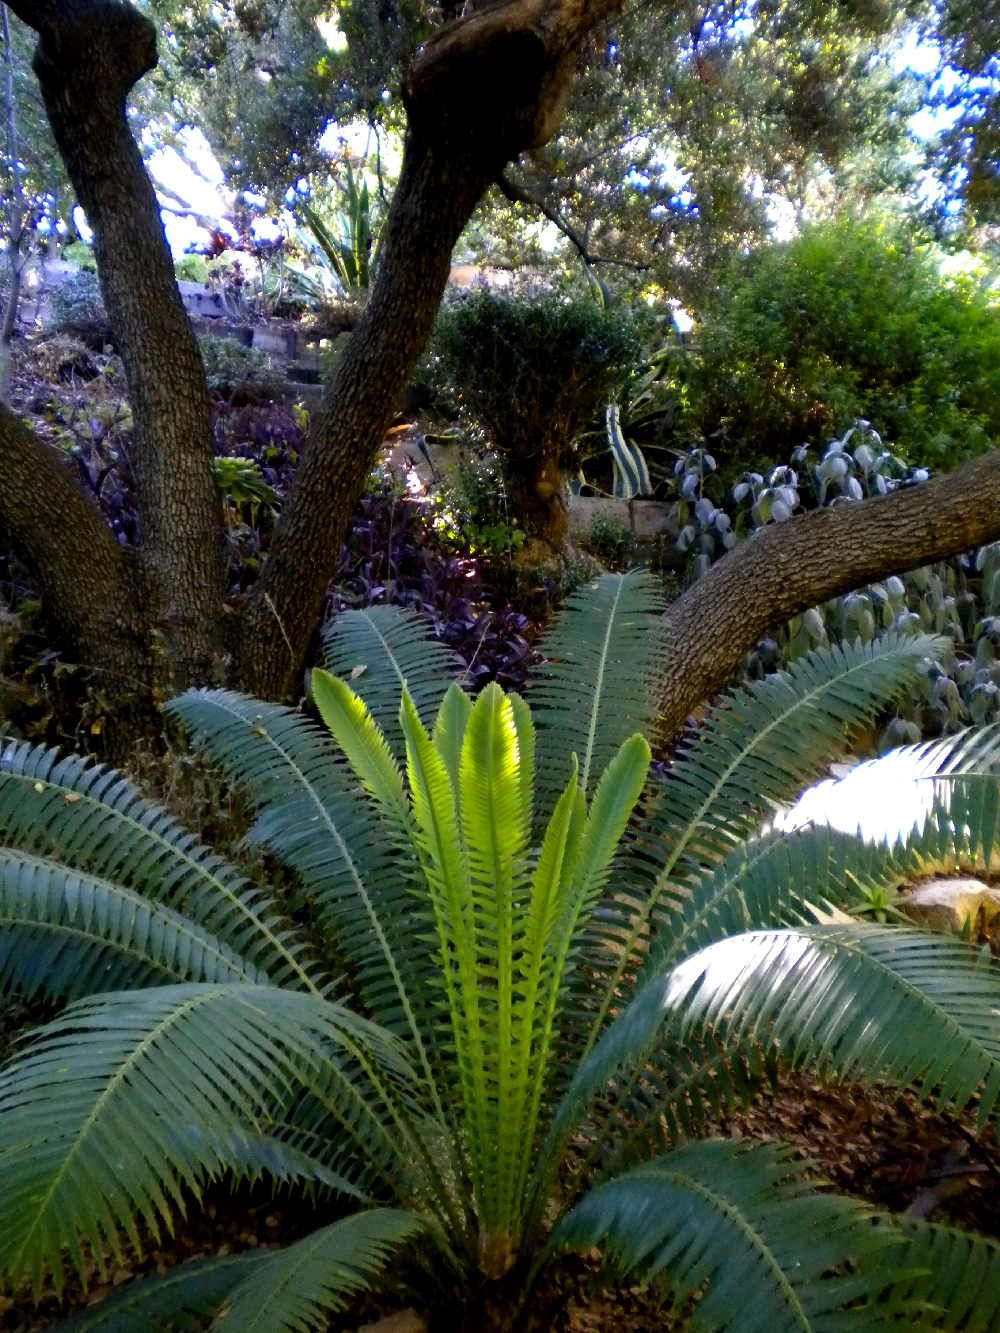 Cycad under oaks